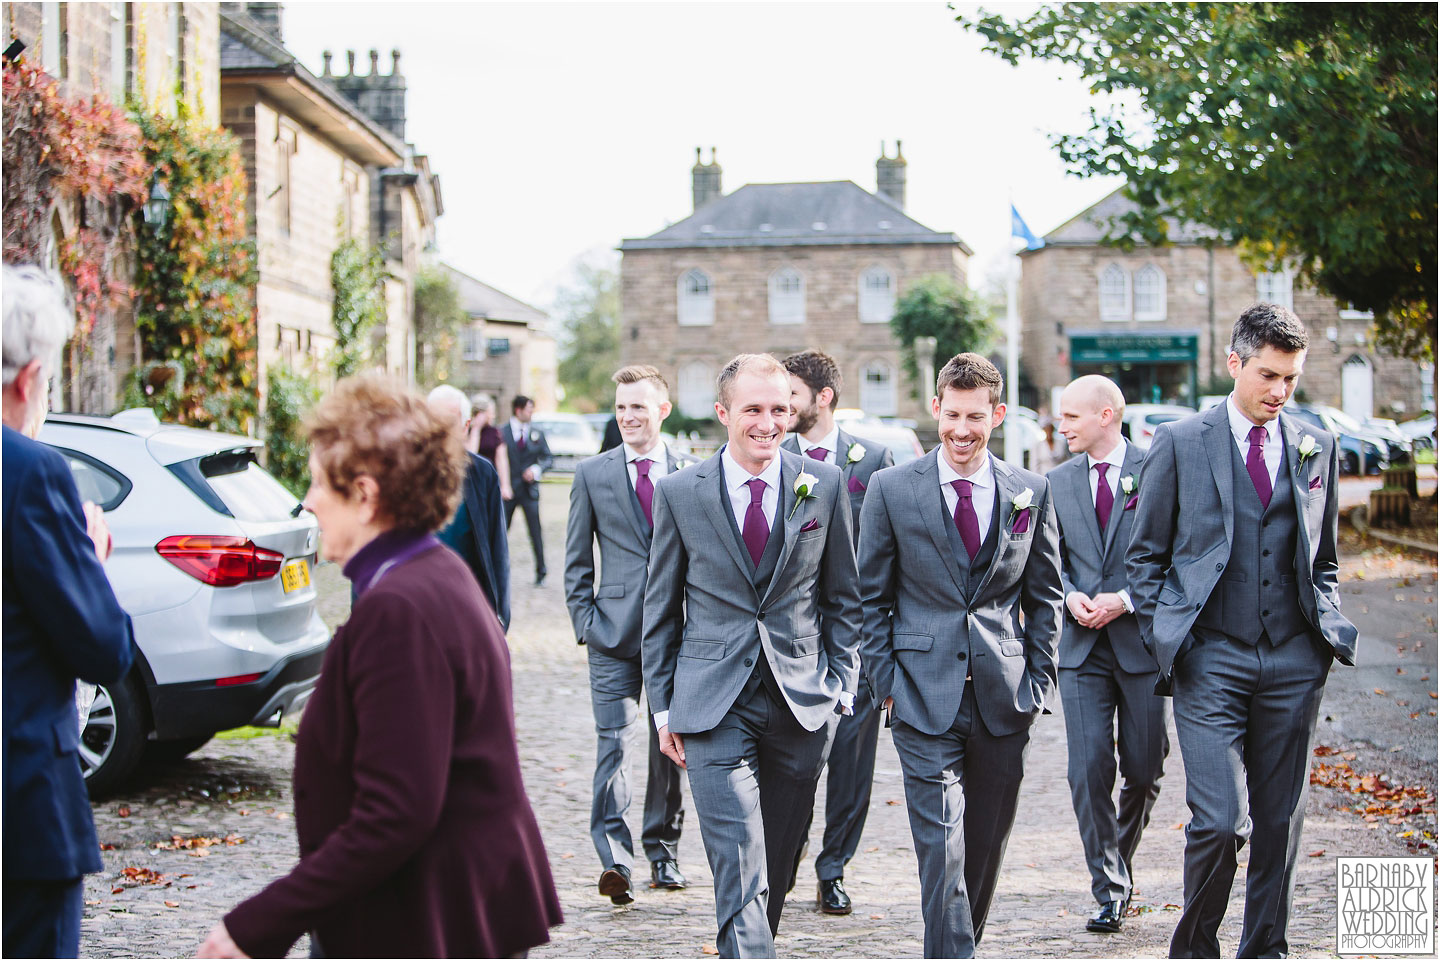 Groomsmen walking, Boar's Head Pub wedding Ripley, Ripley Castle Wedding Photography